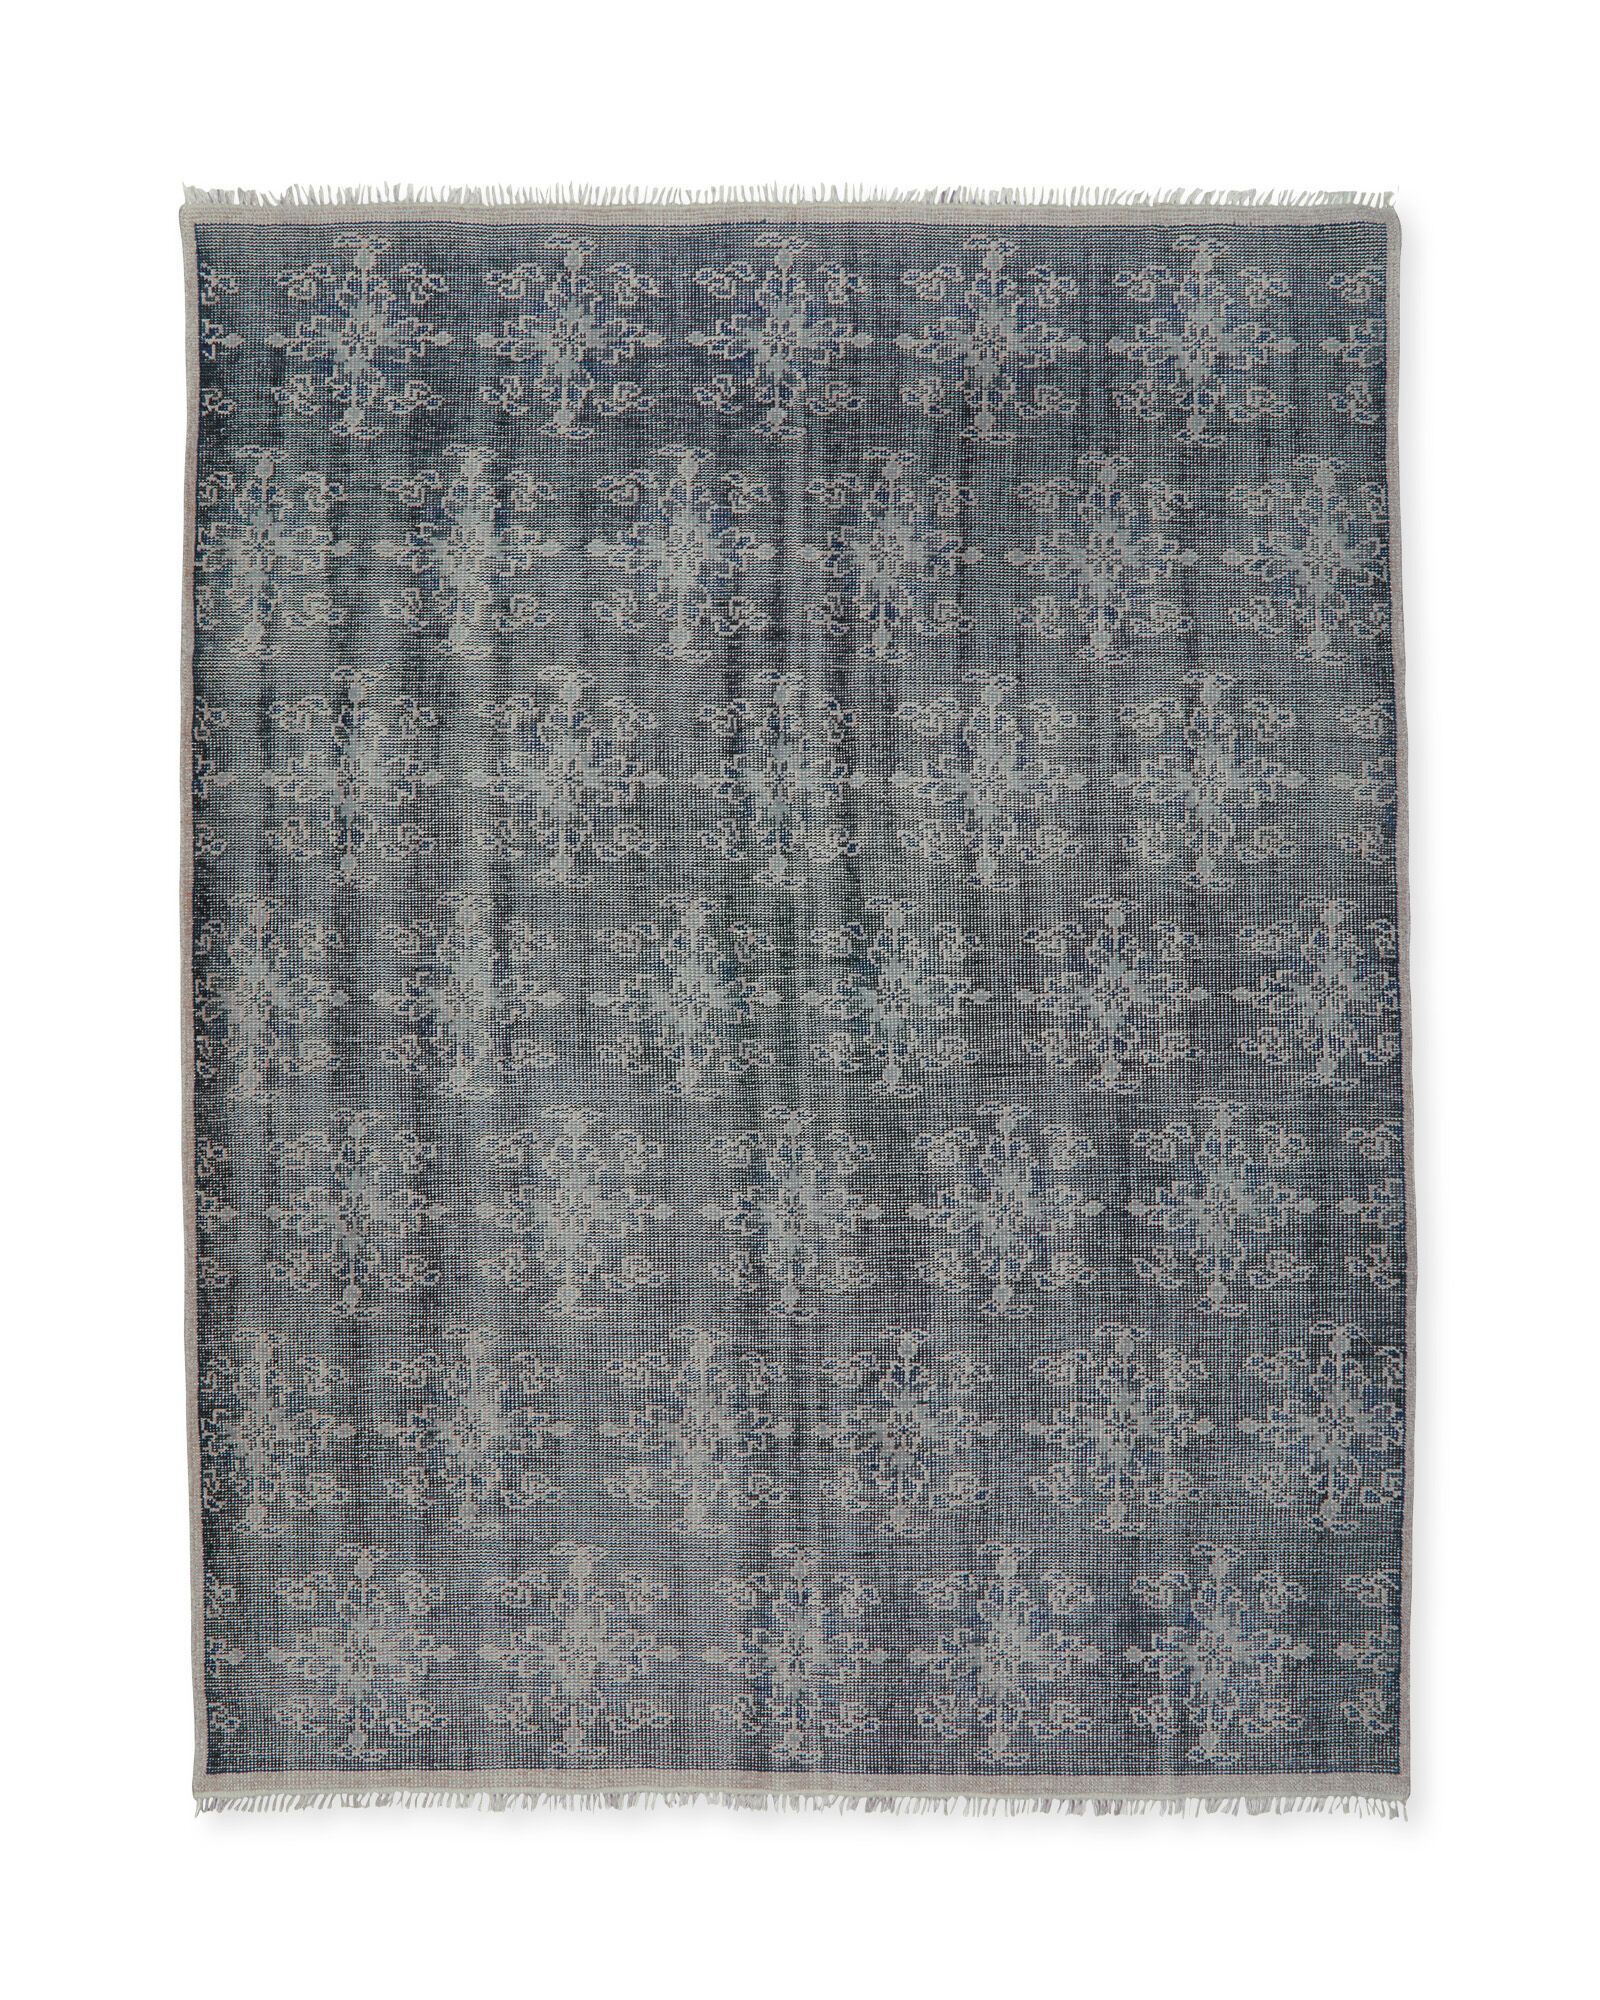 Willowmere Hand Knotted Rug 11 X 14 Serena Lily New